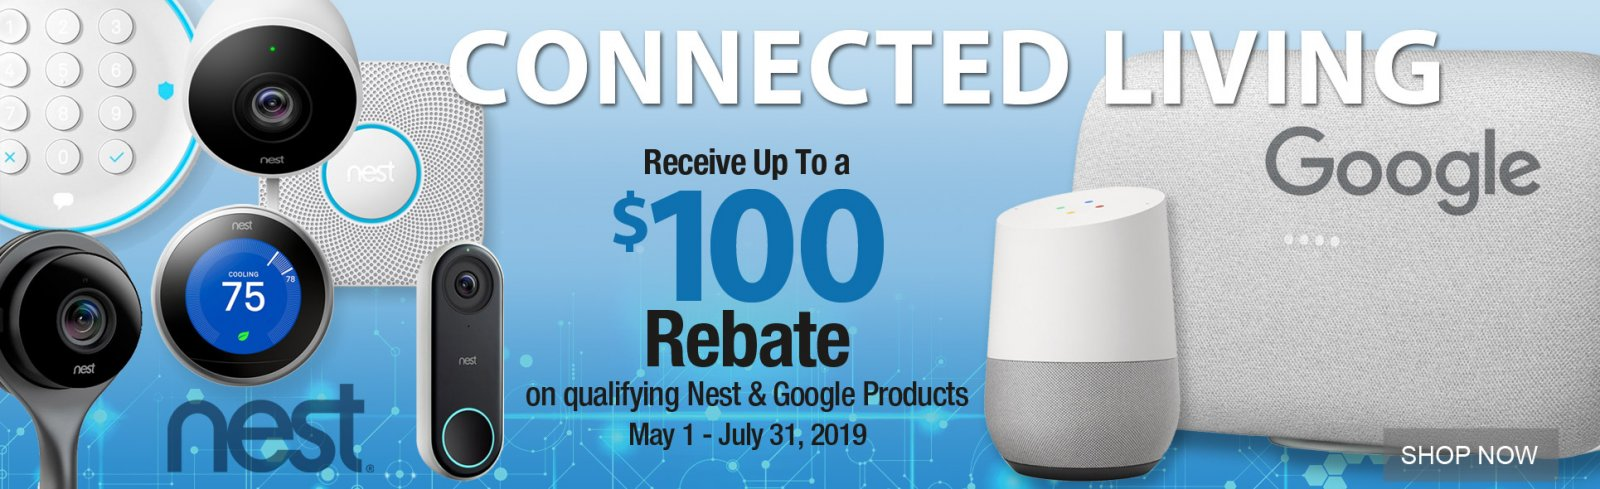 Nest Google Connected living $100 rebate